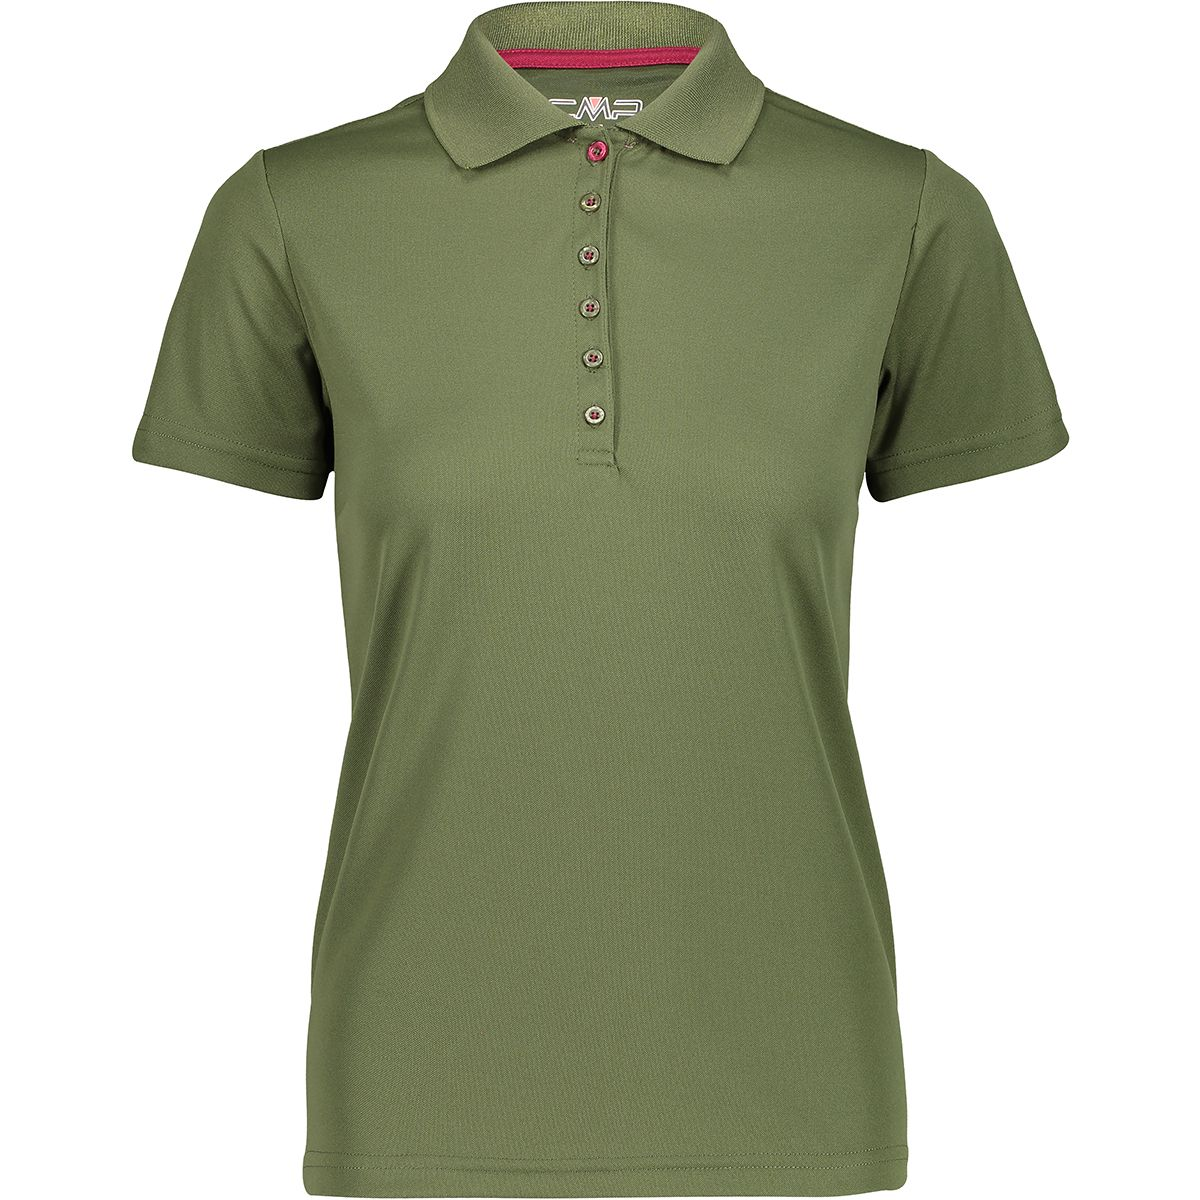 CMP Damen Polo T-Shirt (Größe L, Oliv) | T-Shirts Funktion > Damen